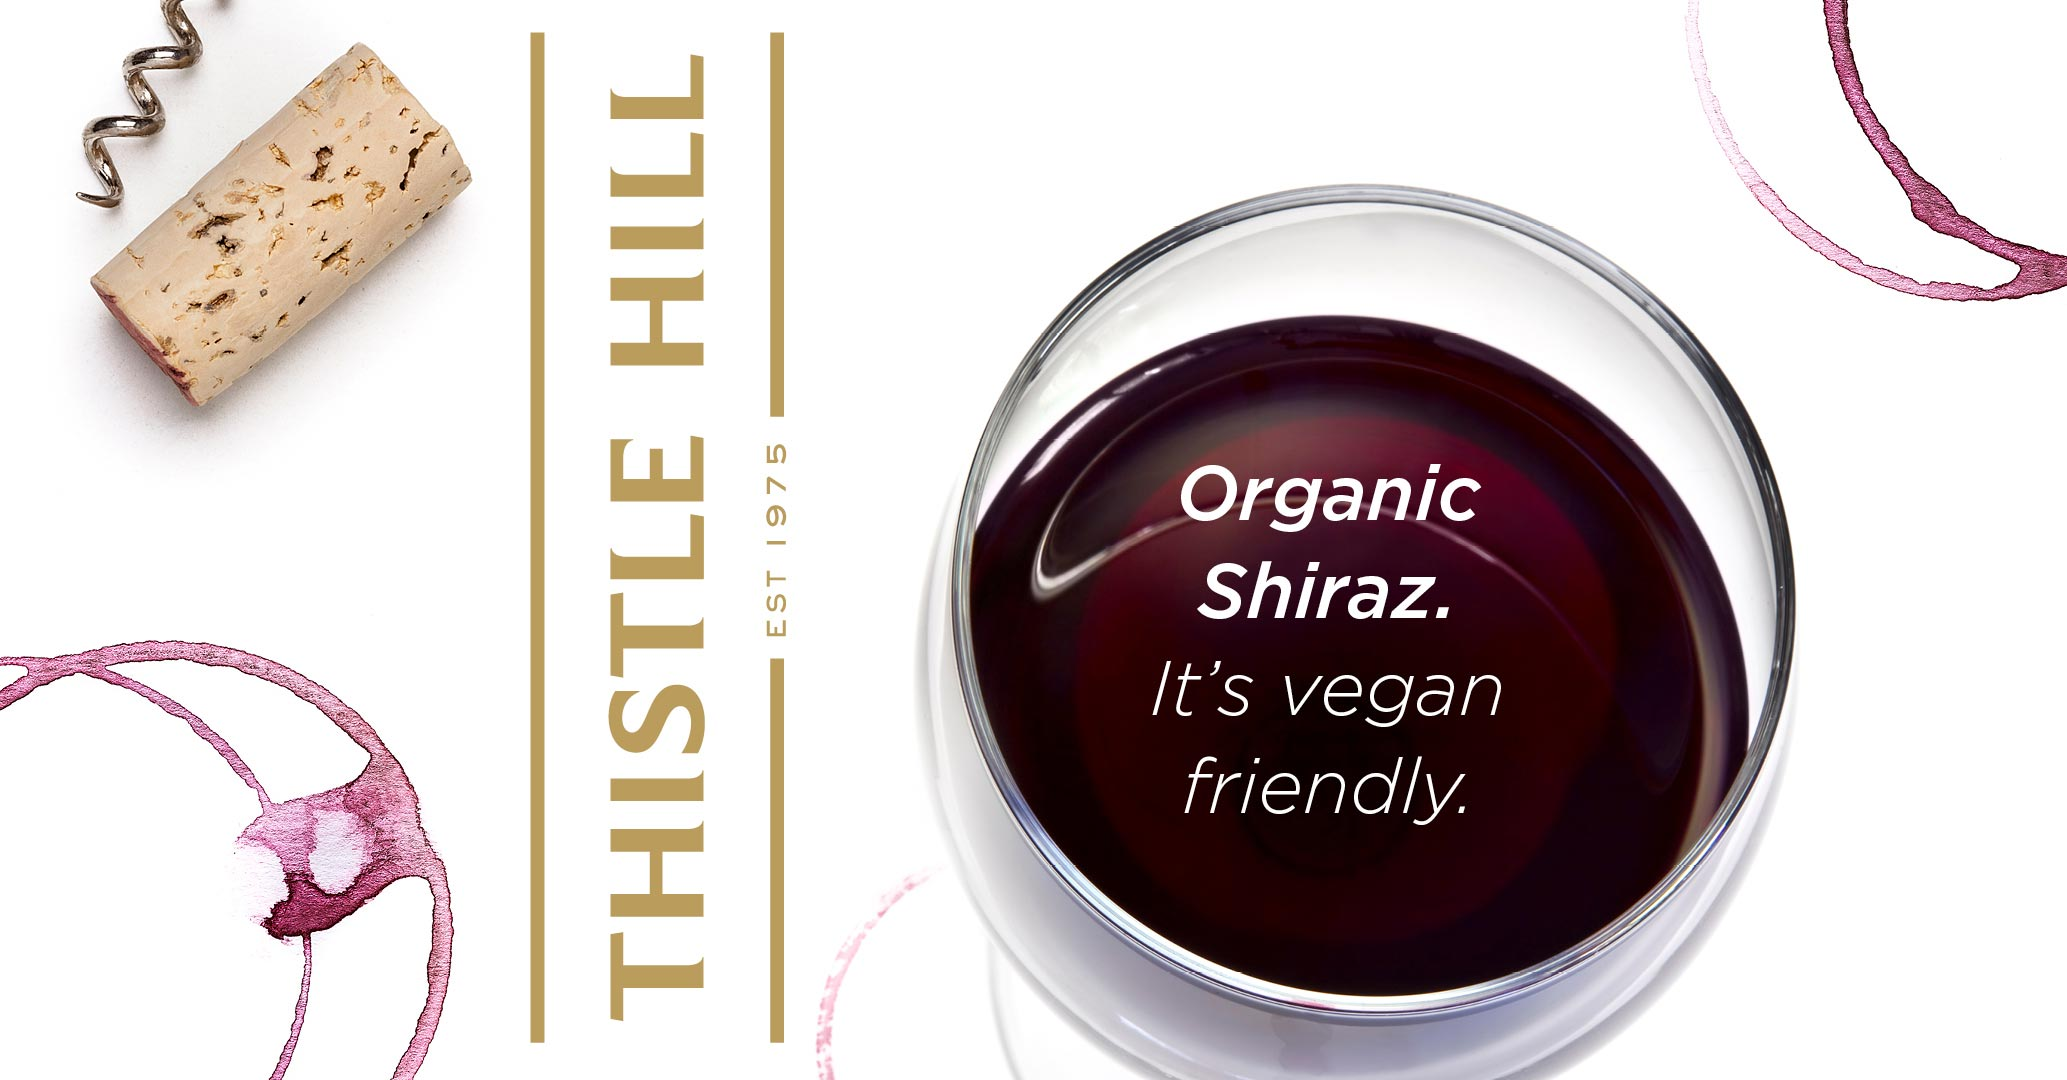 Thistle Hill Organic Shiraz